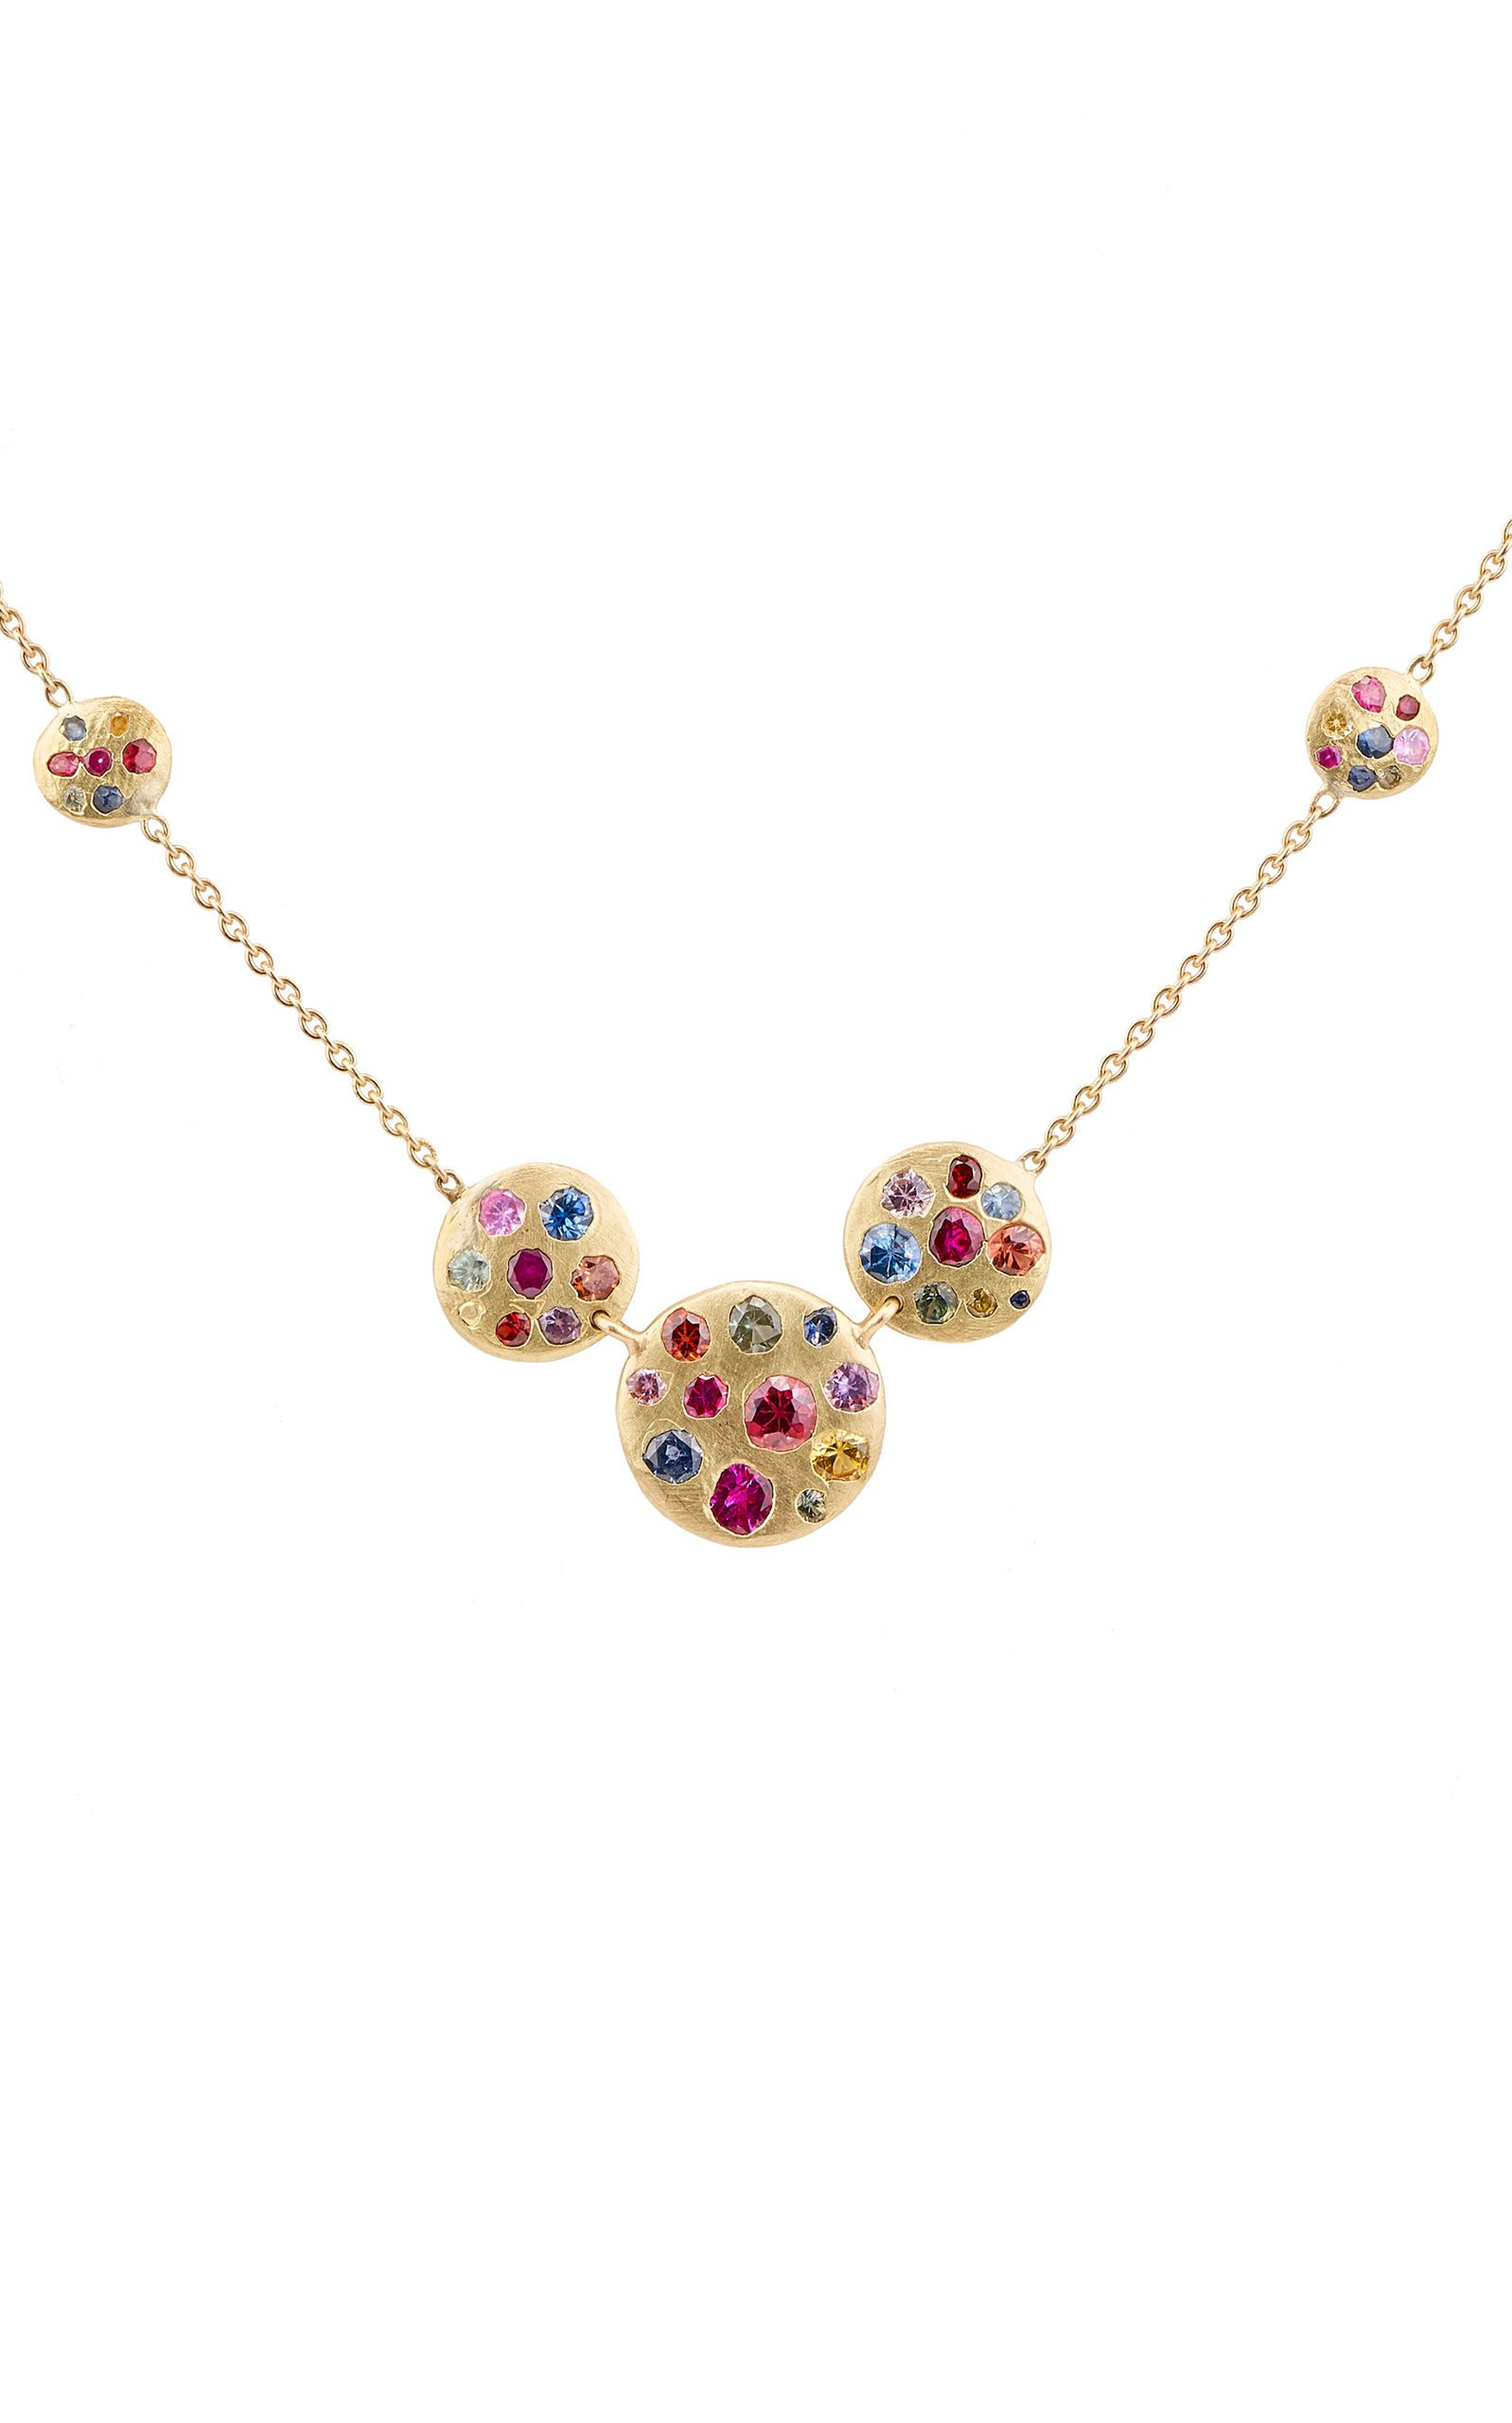 Polly Wales Cosmos 18K Gold Sapphire Necklace